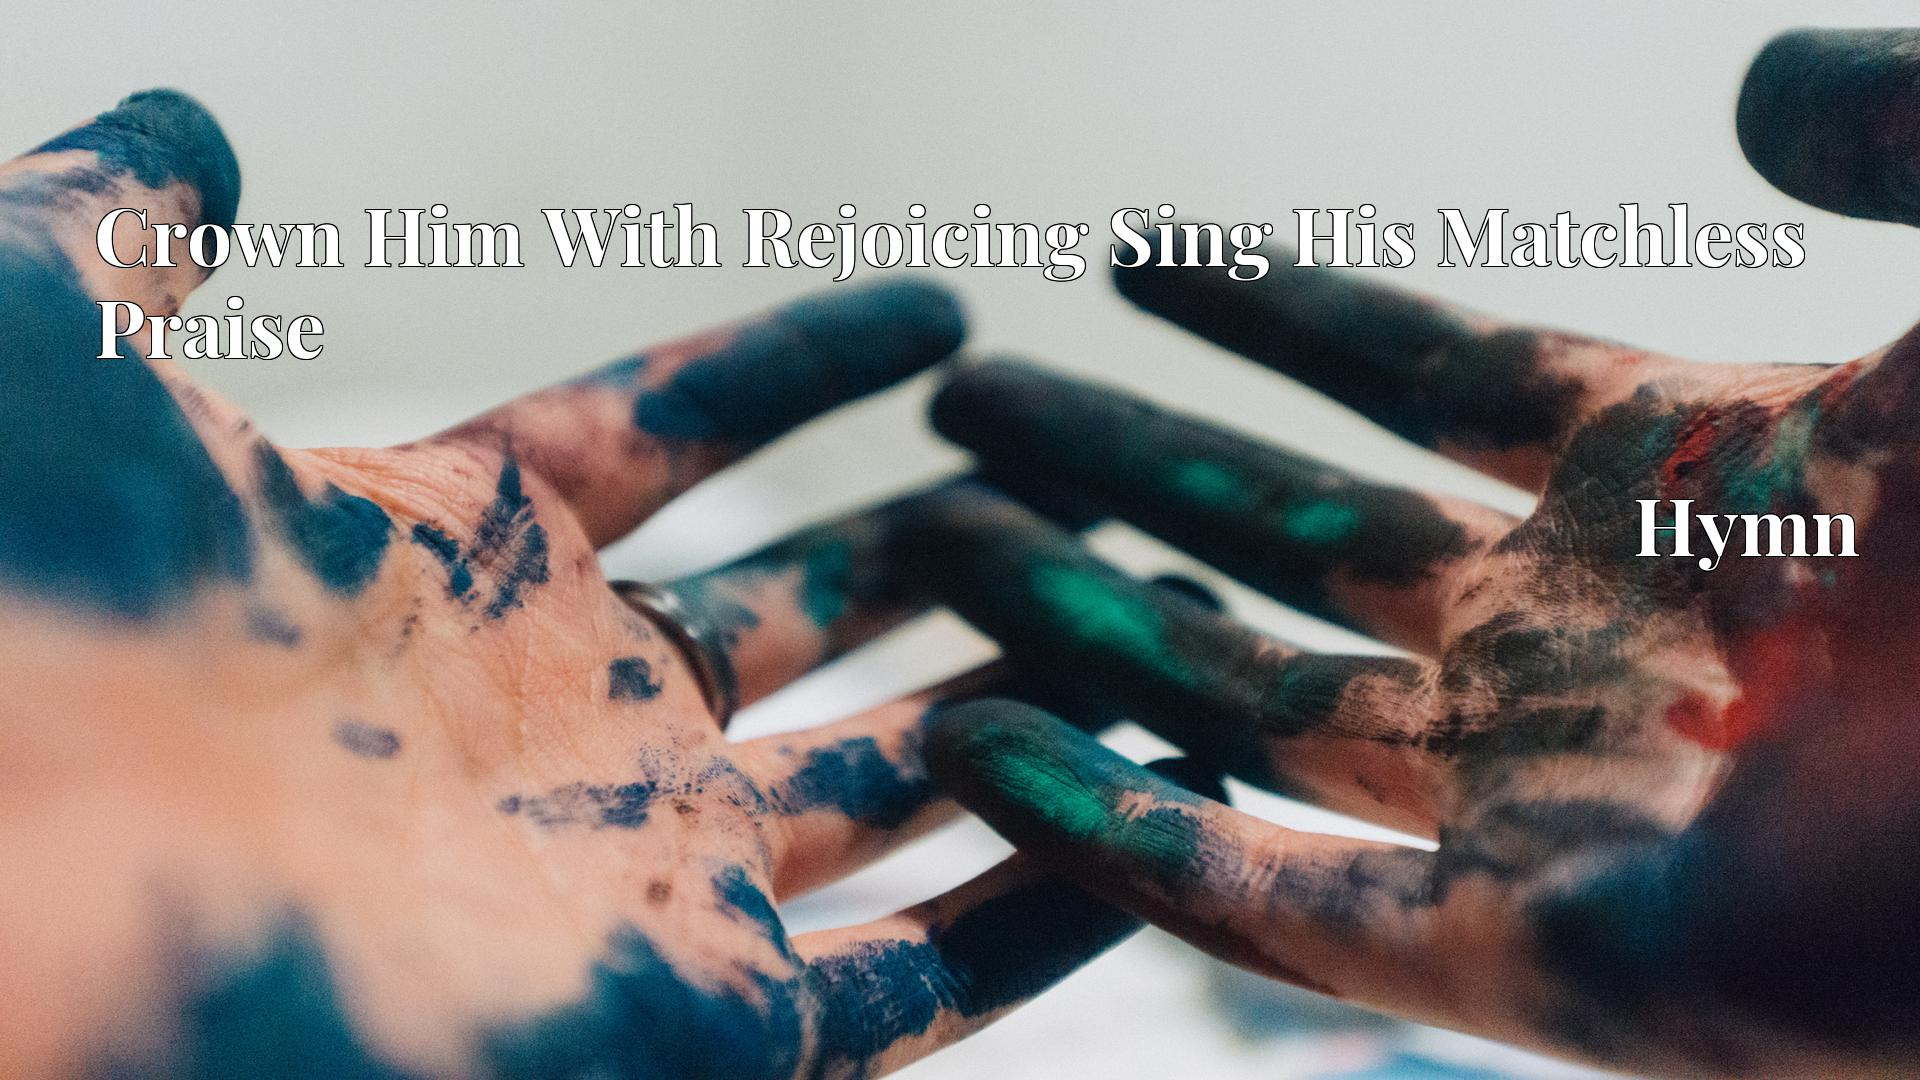 Crown Him With Rejoicing Sing His Matchless Praise - Hymn